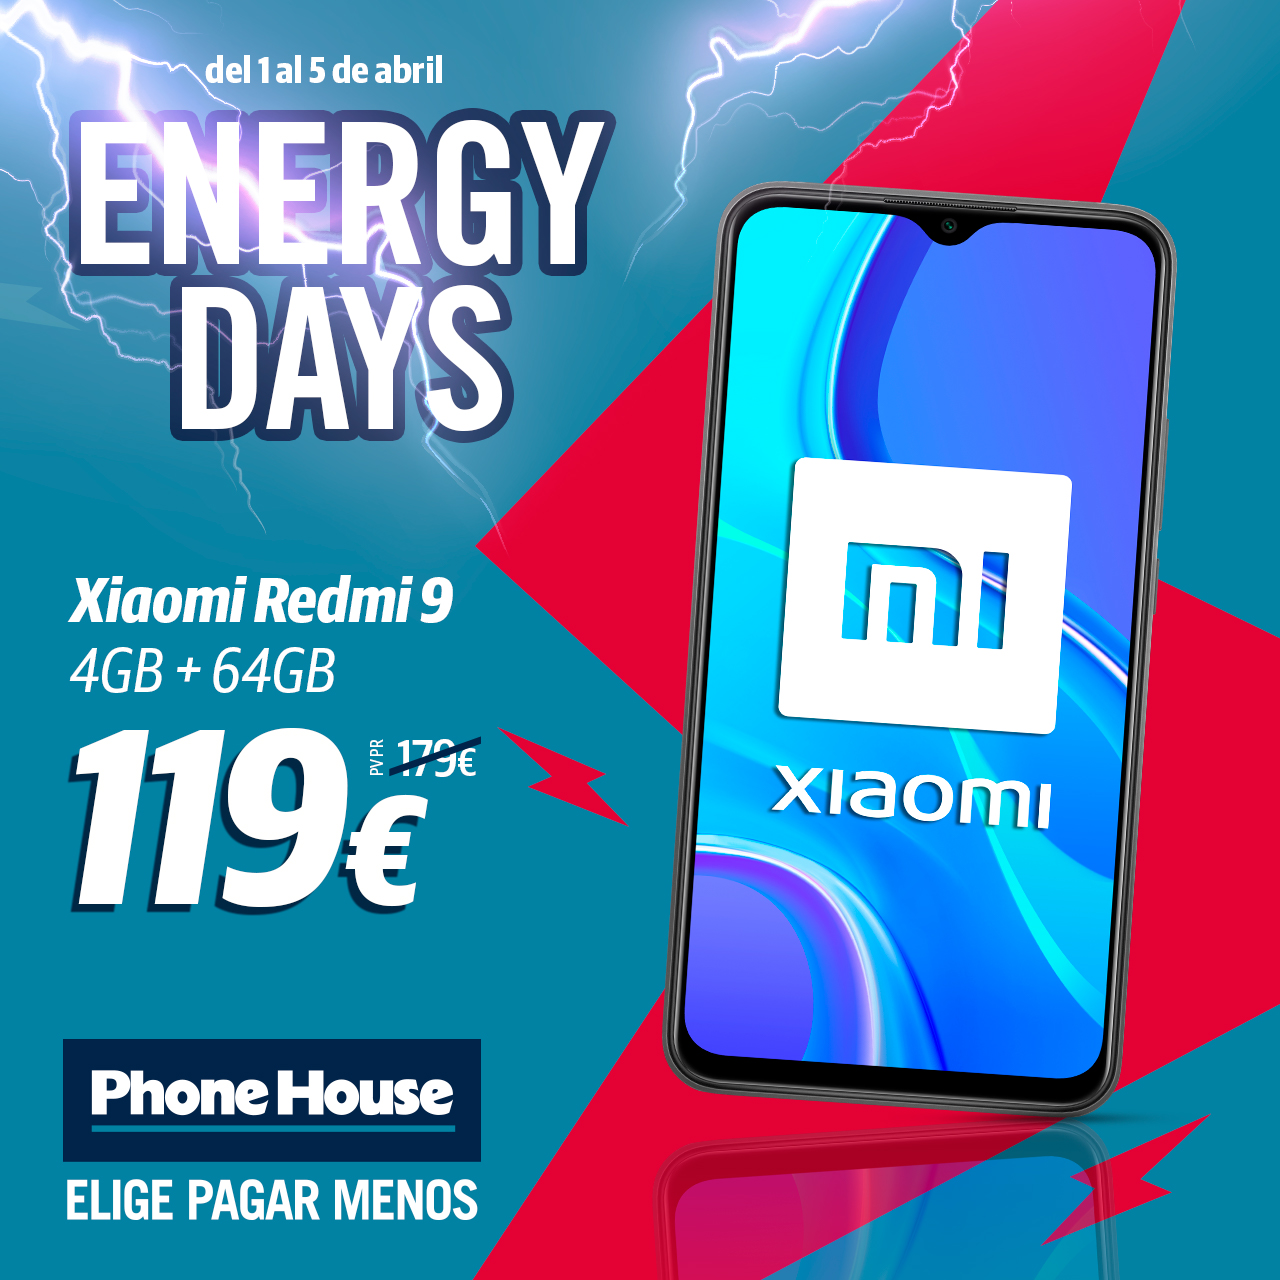 1000x1000 Rrss Energy Days 01a05 04 Prioridad3